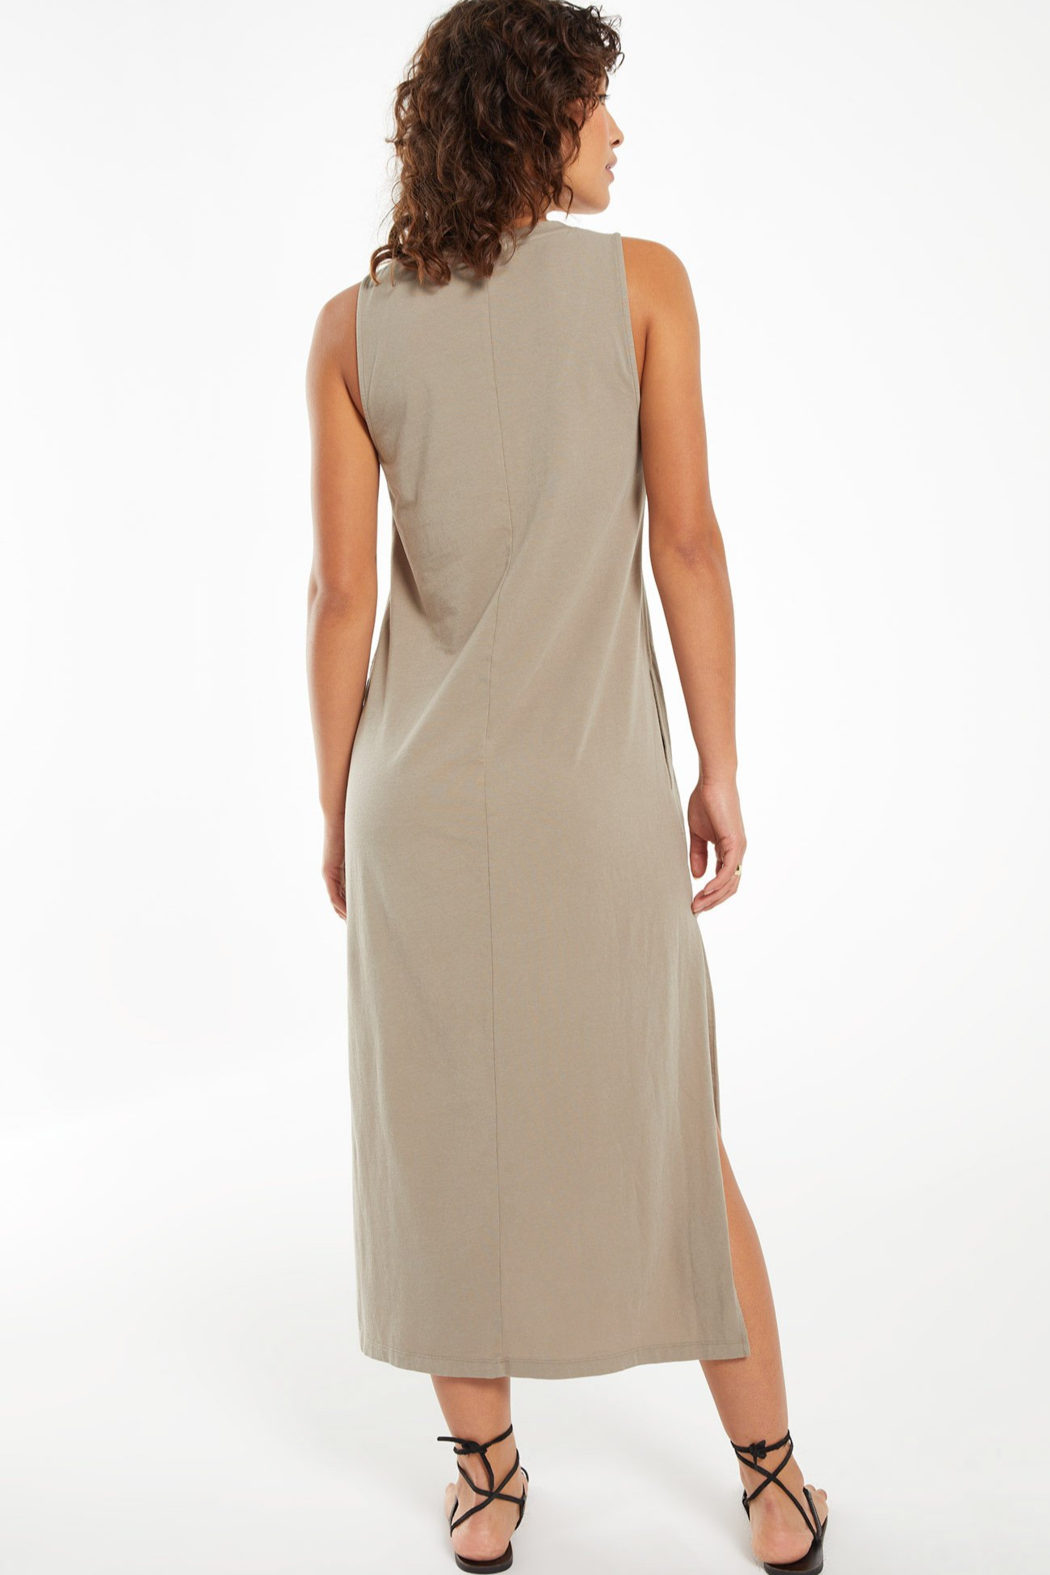 z supply Kinley Midi Dress - Side Cropped Image